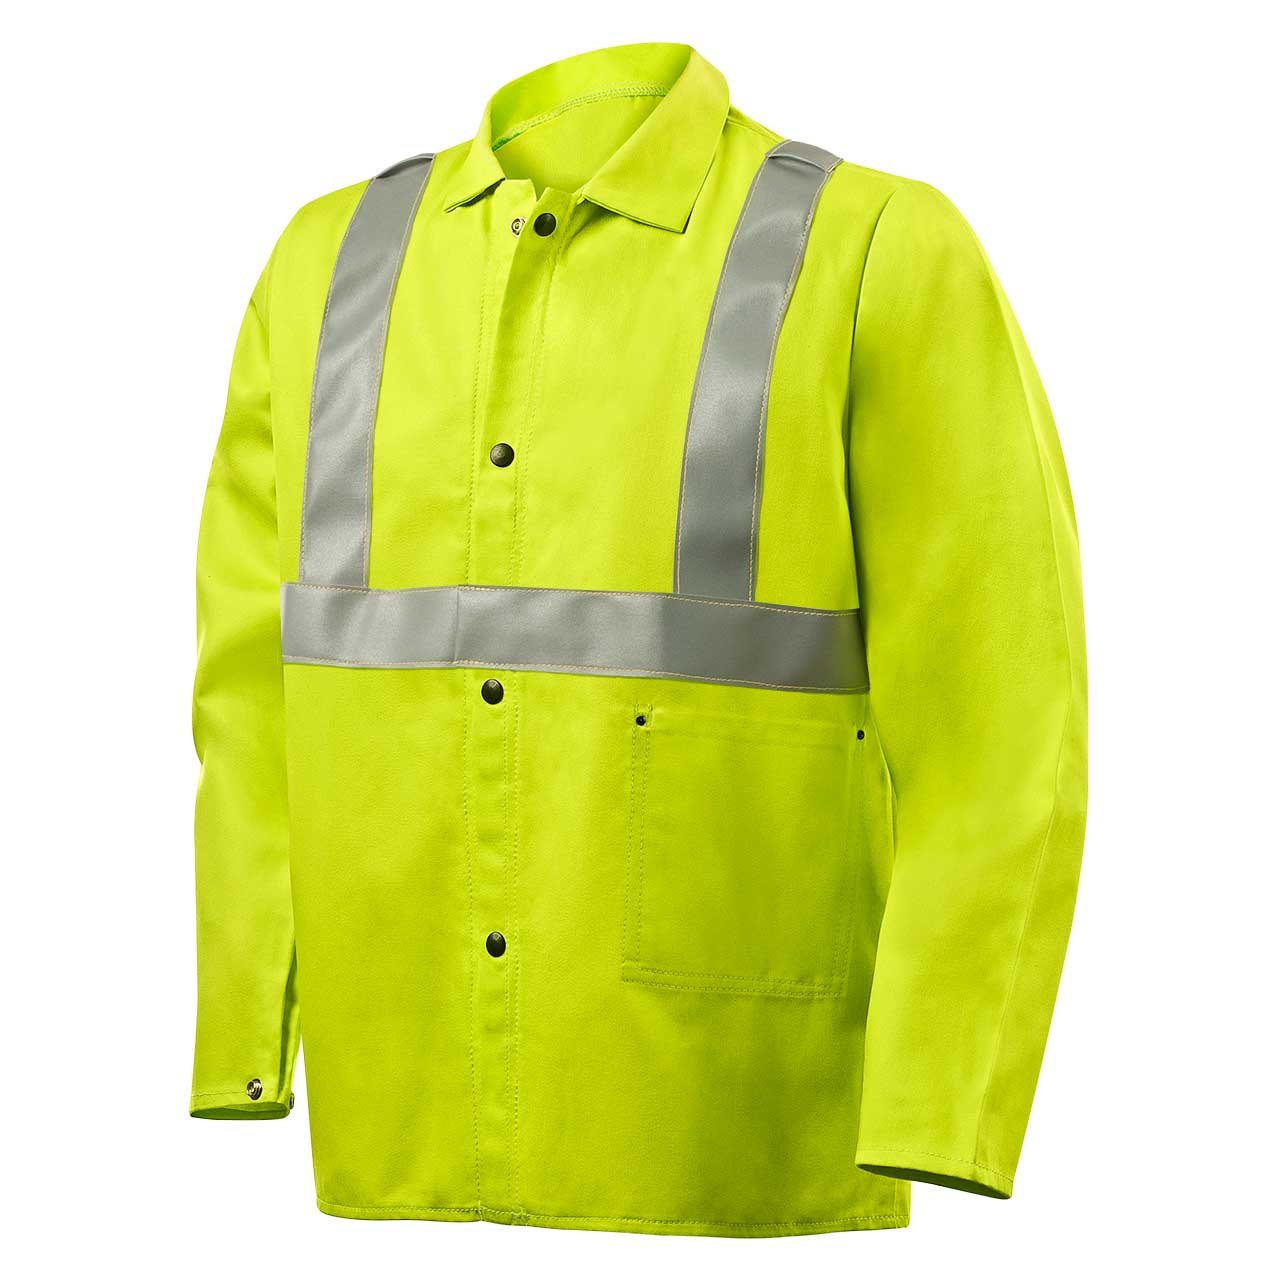 Steiner 1070RS-2X 30-Inch Jacket, Weld Lite 9-Ounce Fire Resistant Cotton Lime Green with Silver Reflective Stripes, 2X-Large